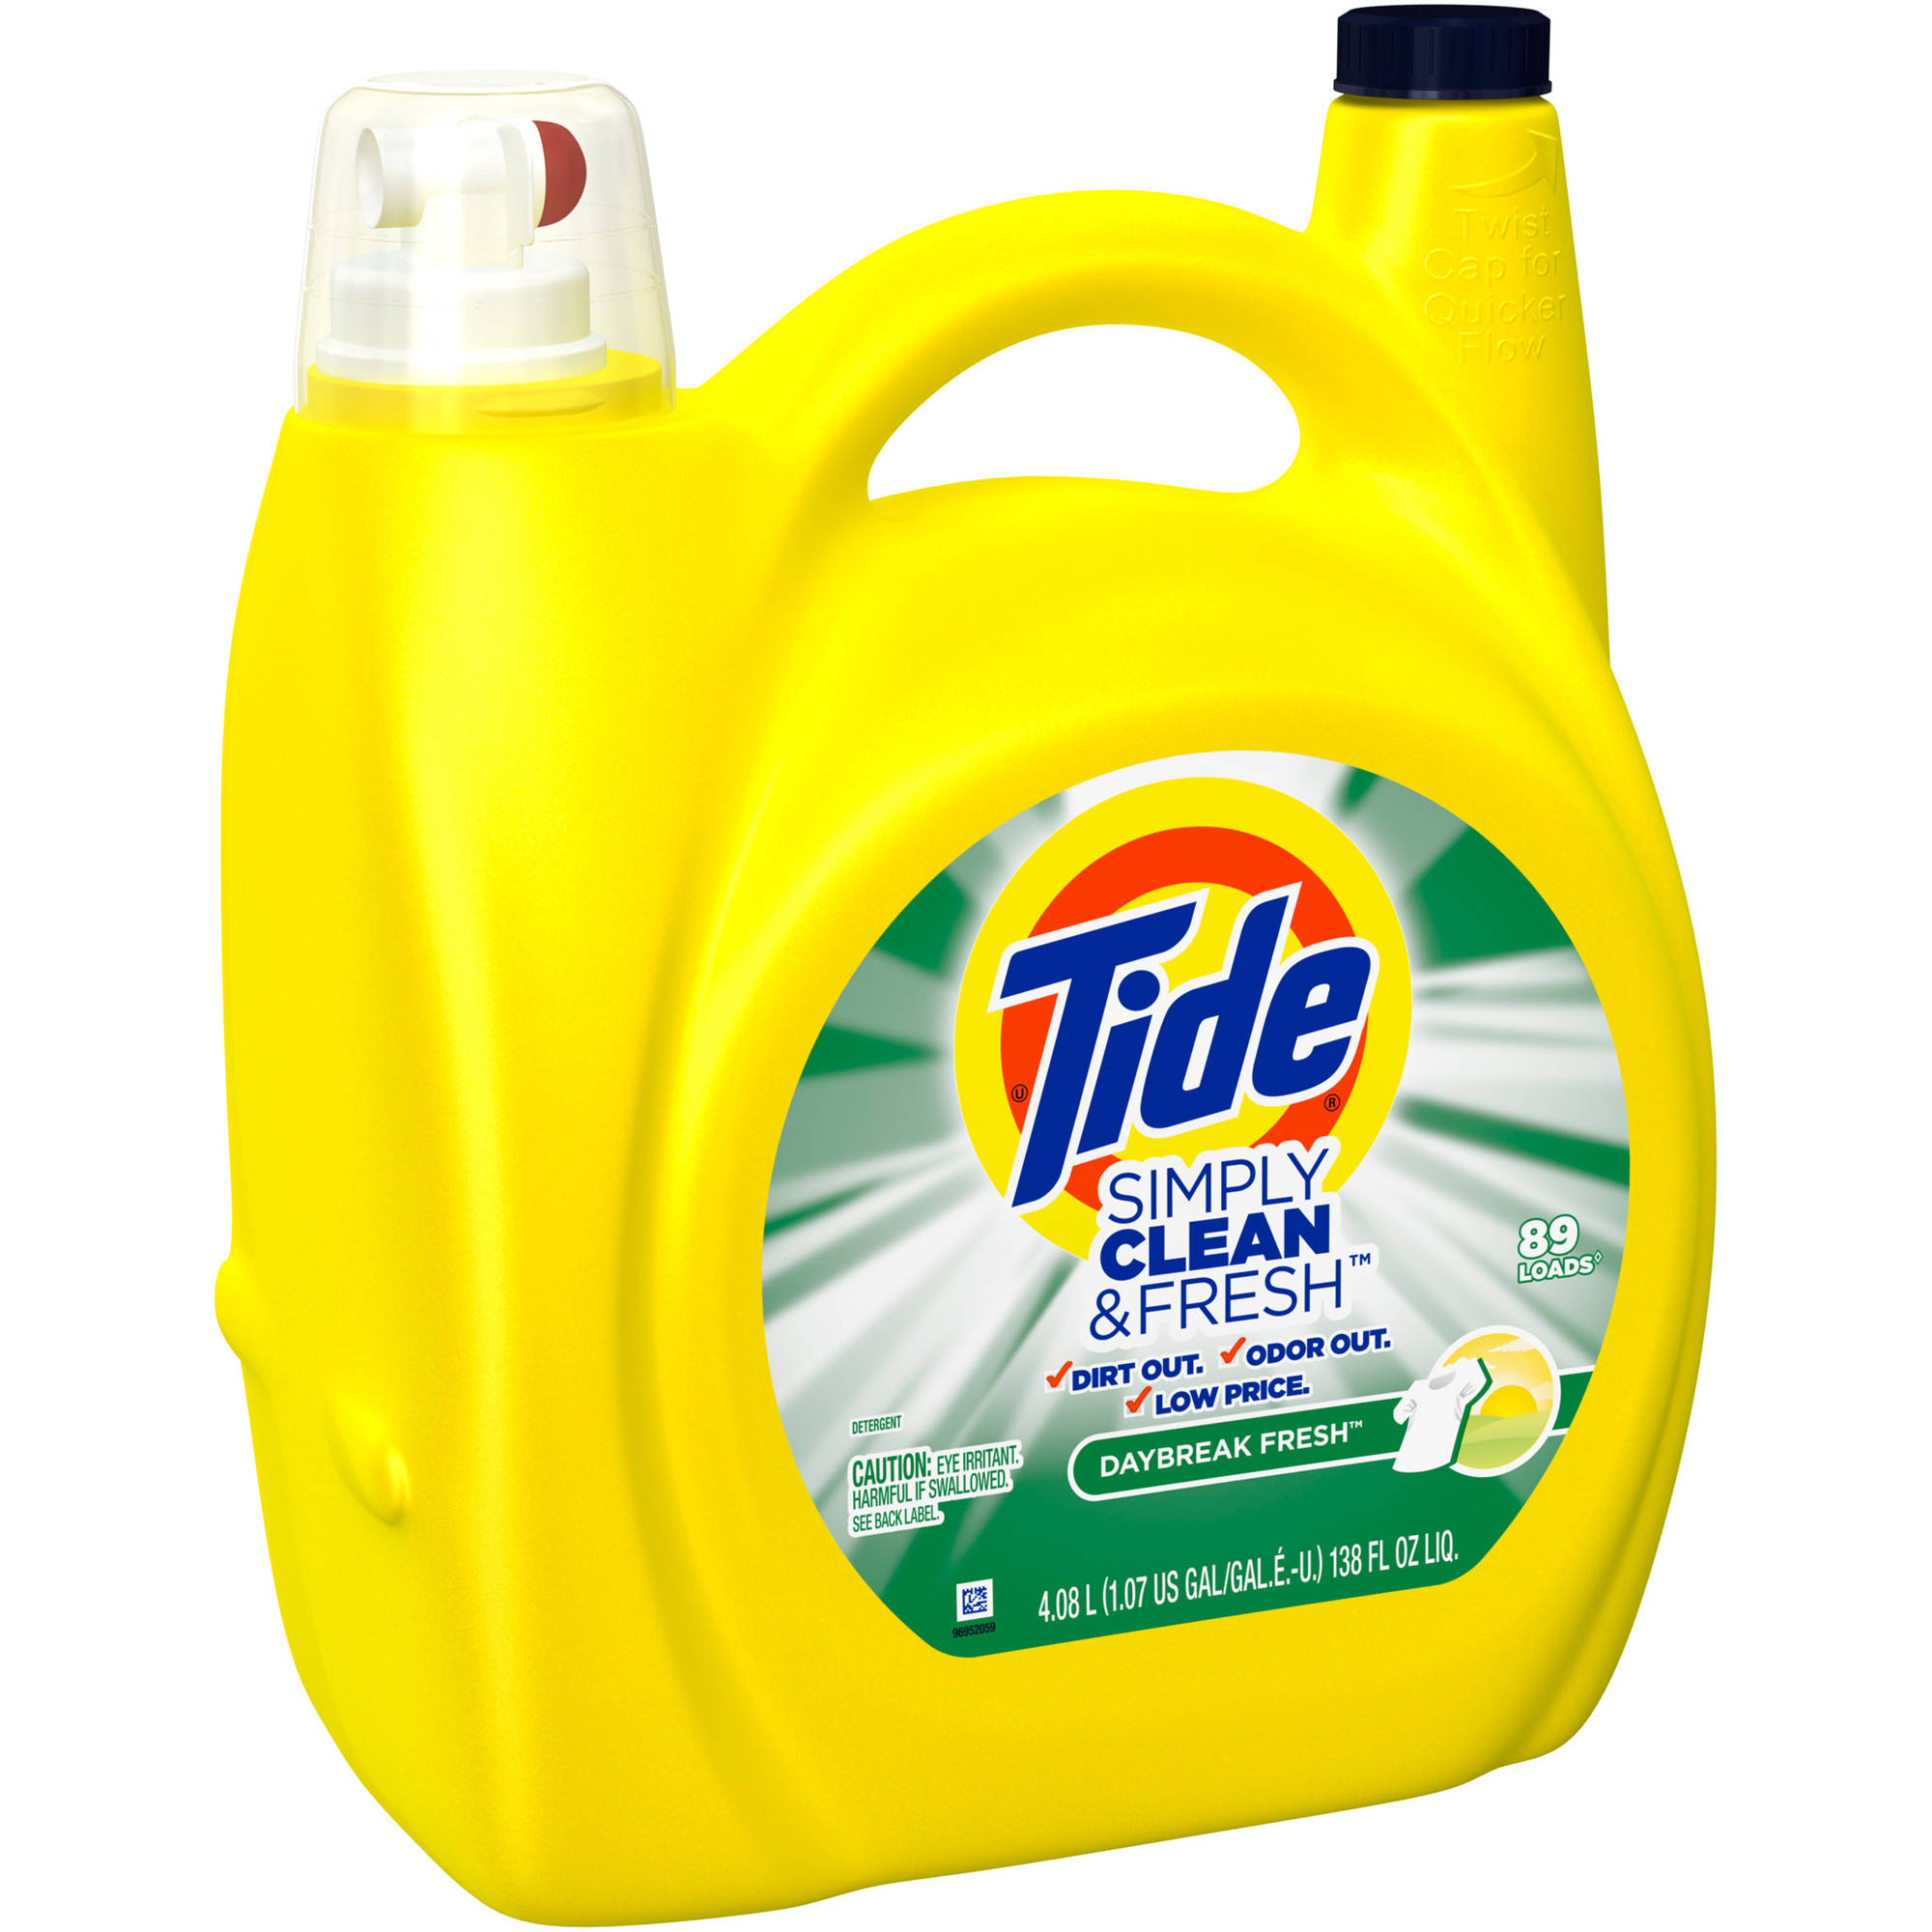 Tide Simply Clean & Fresh HE Liquid Laundry Detergent, Daybreak Fresh Scent, 89 loads, 138 oz